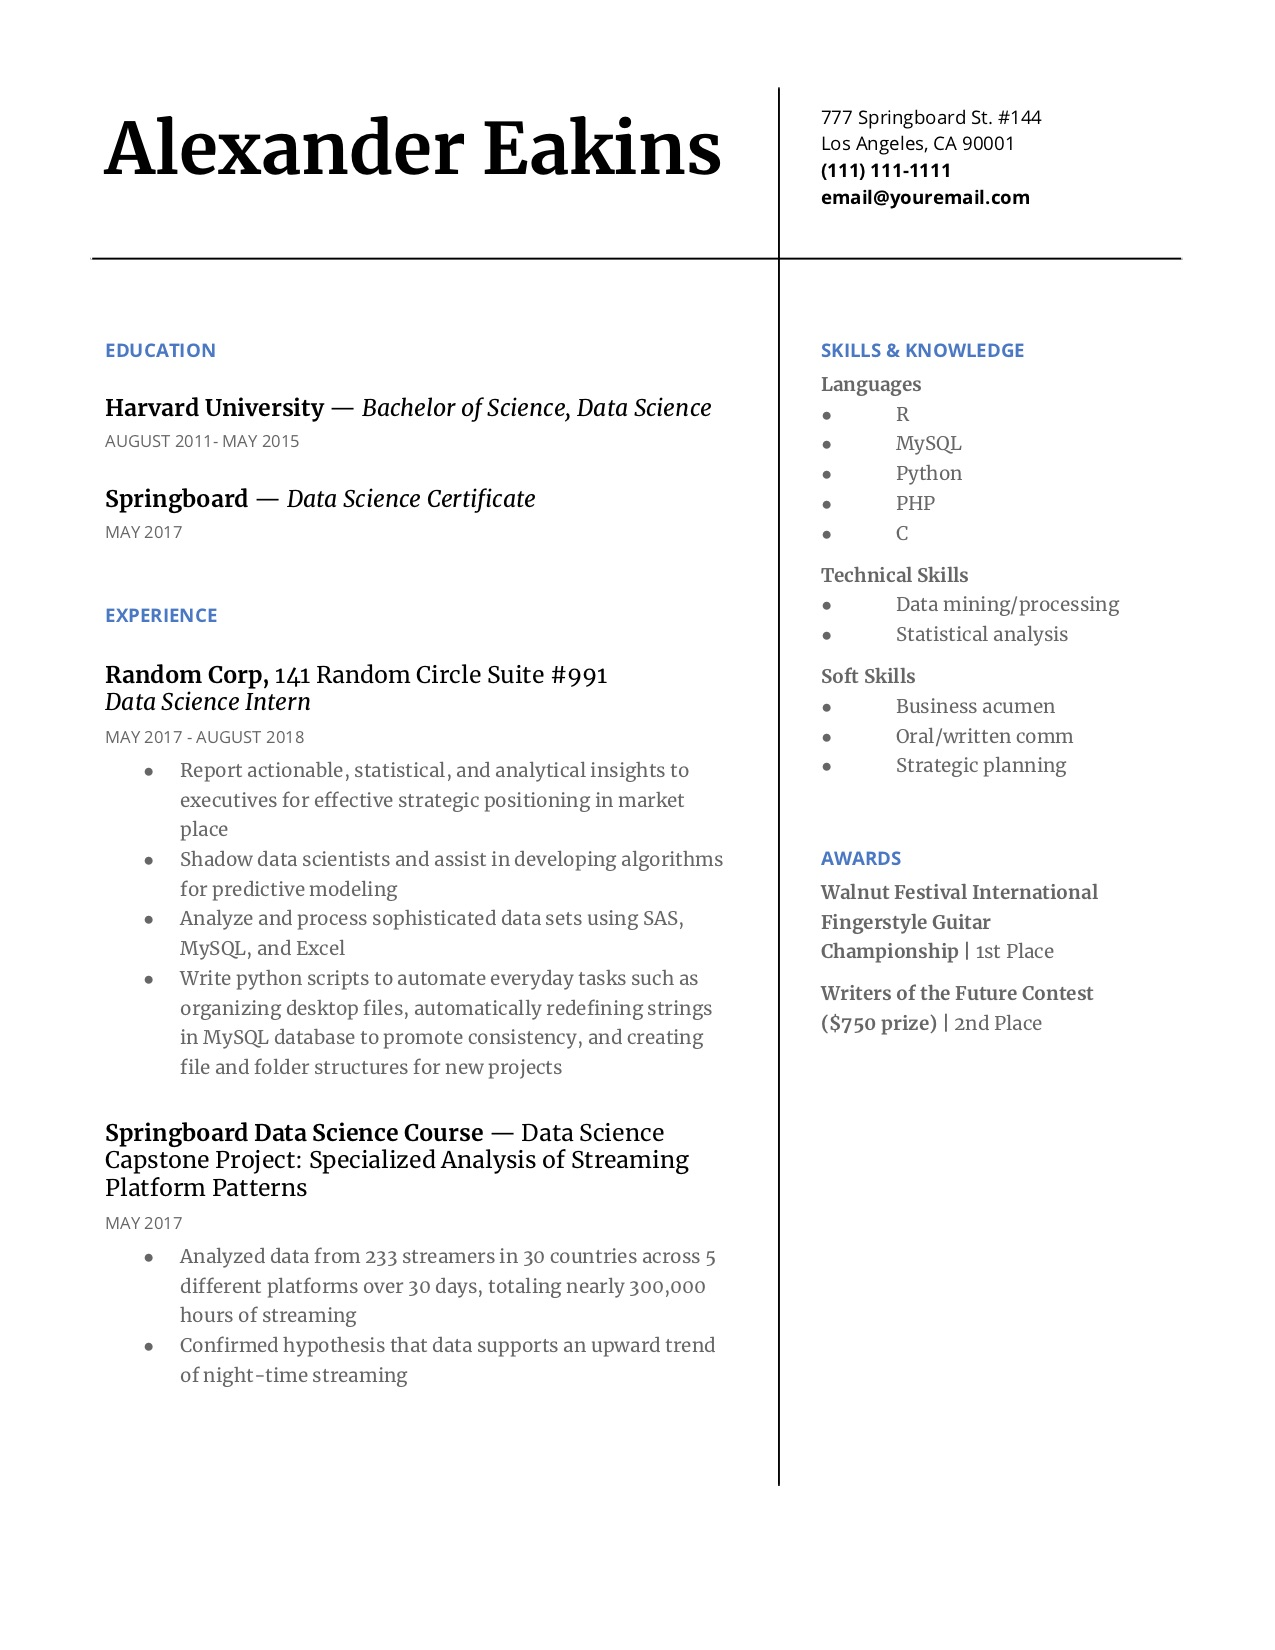 step guide to make your data science resume pop springboard blog bachelor of lawn service Resume Bachelor Of Science Resume